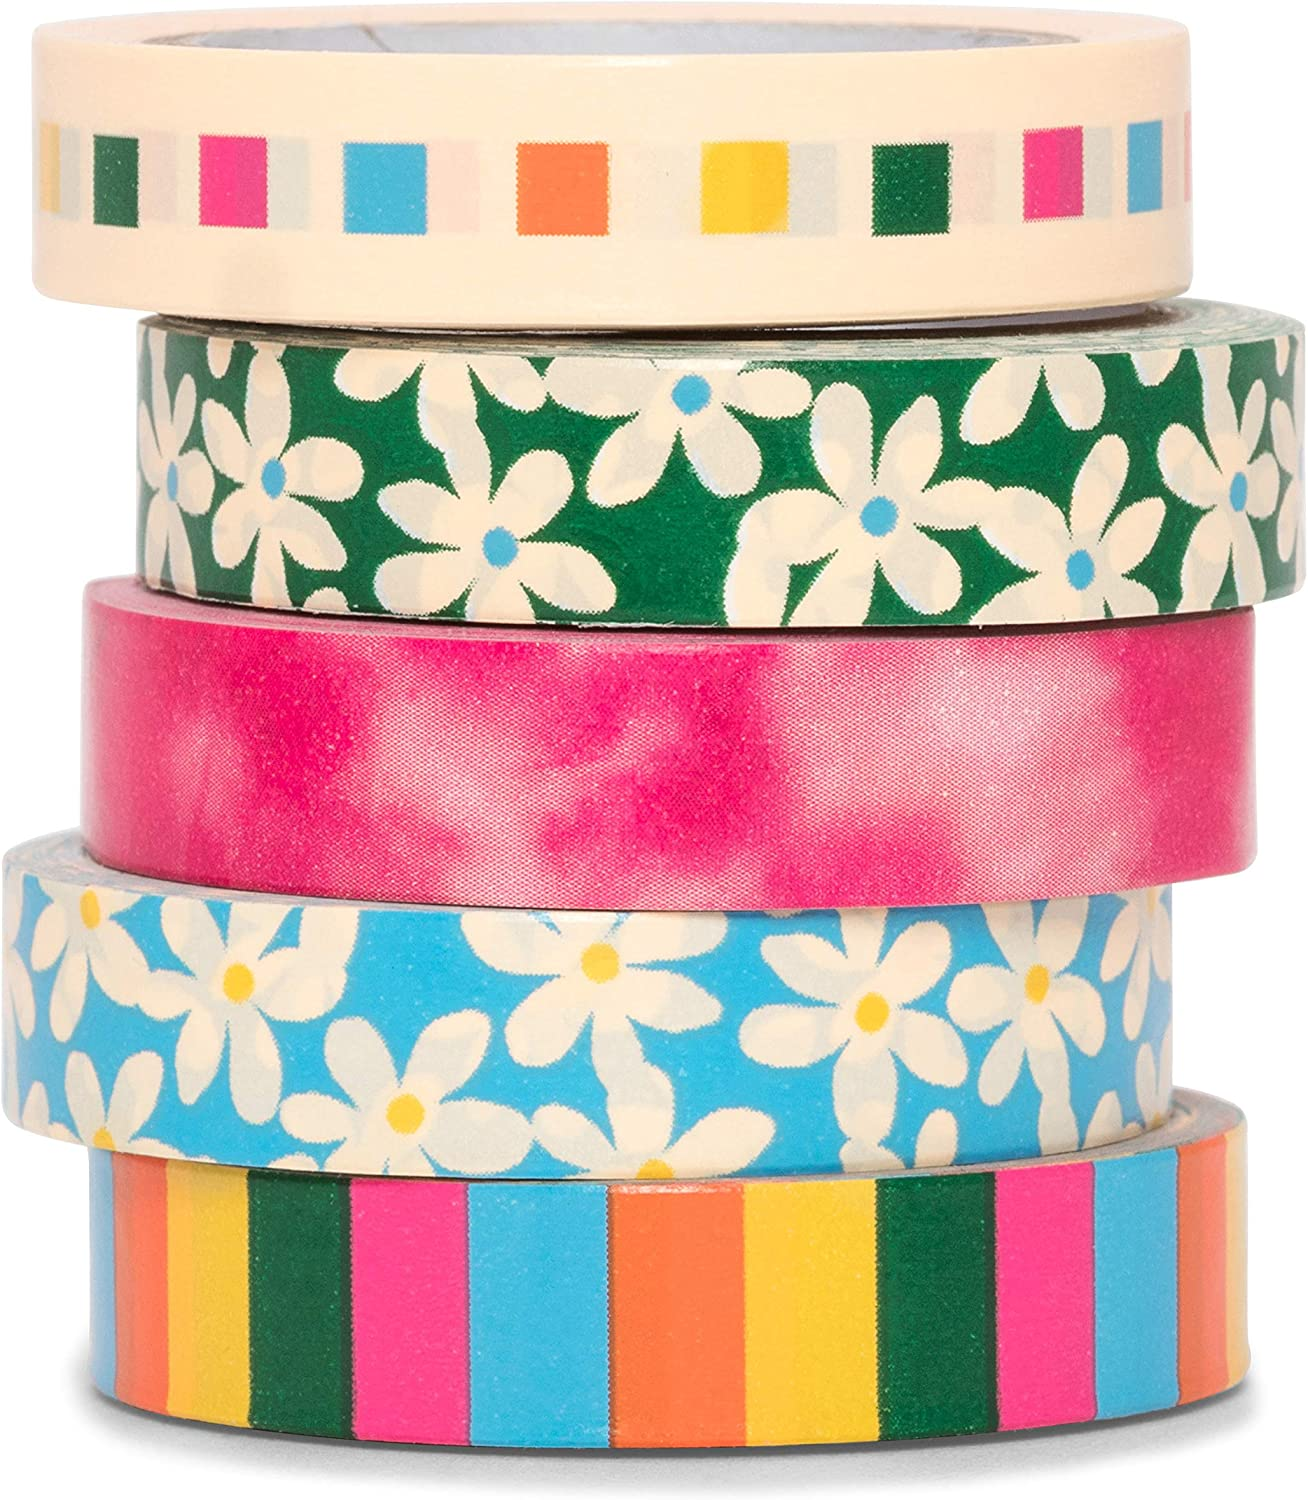 Ban.do Stick with It Paper Tape Rolls, Colored Decorative Tape Set of 5, Daisies